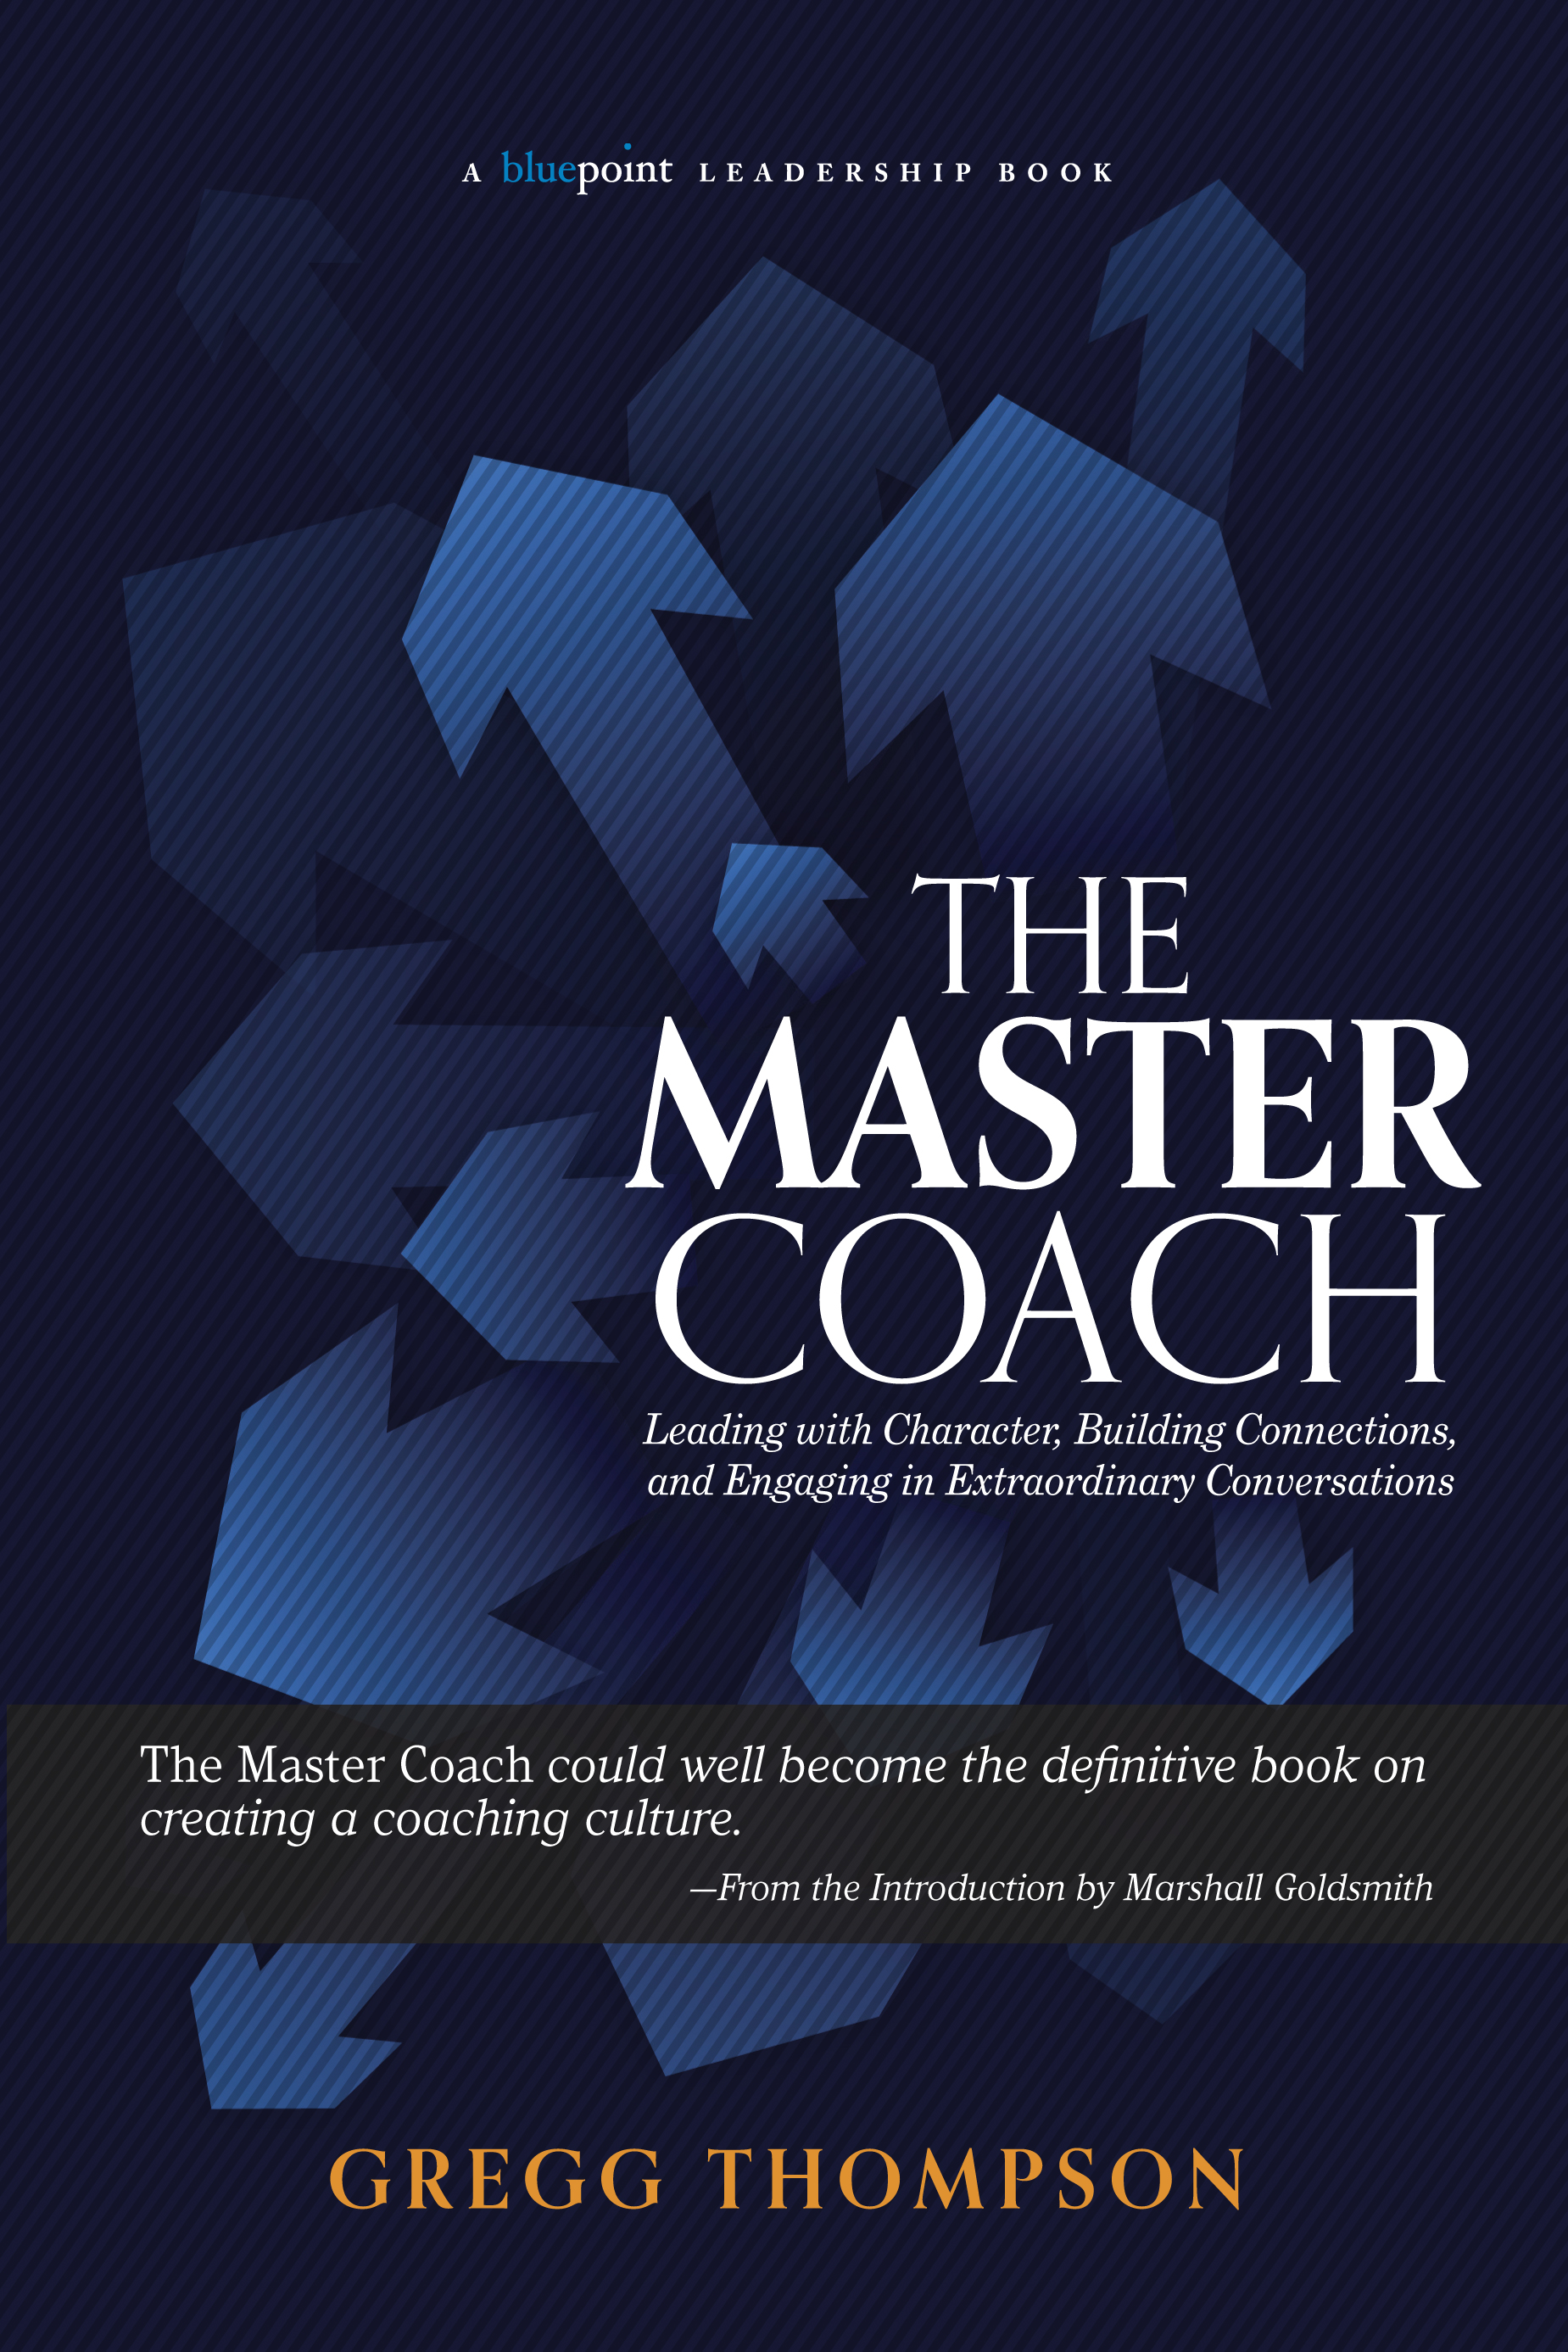 The Master Coach